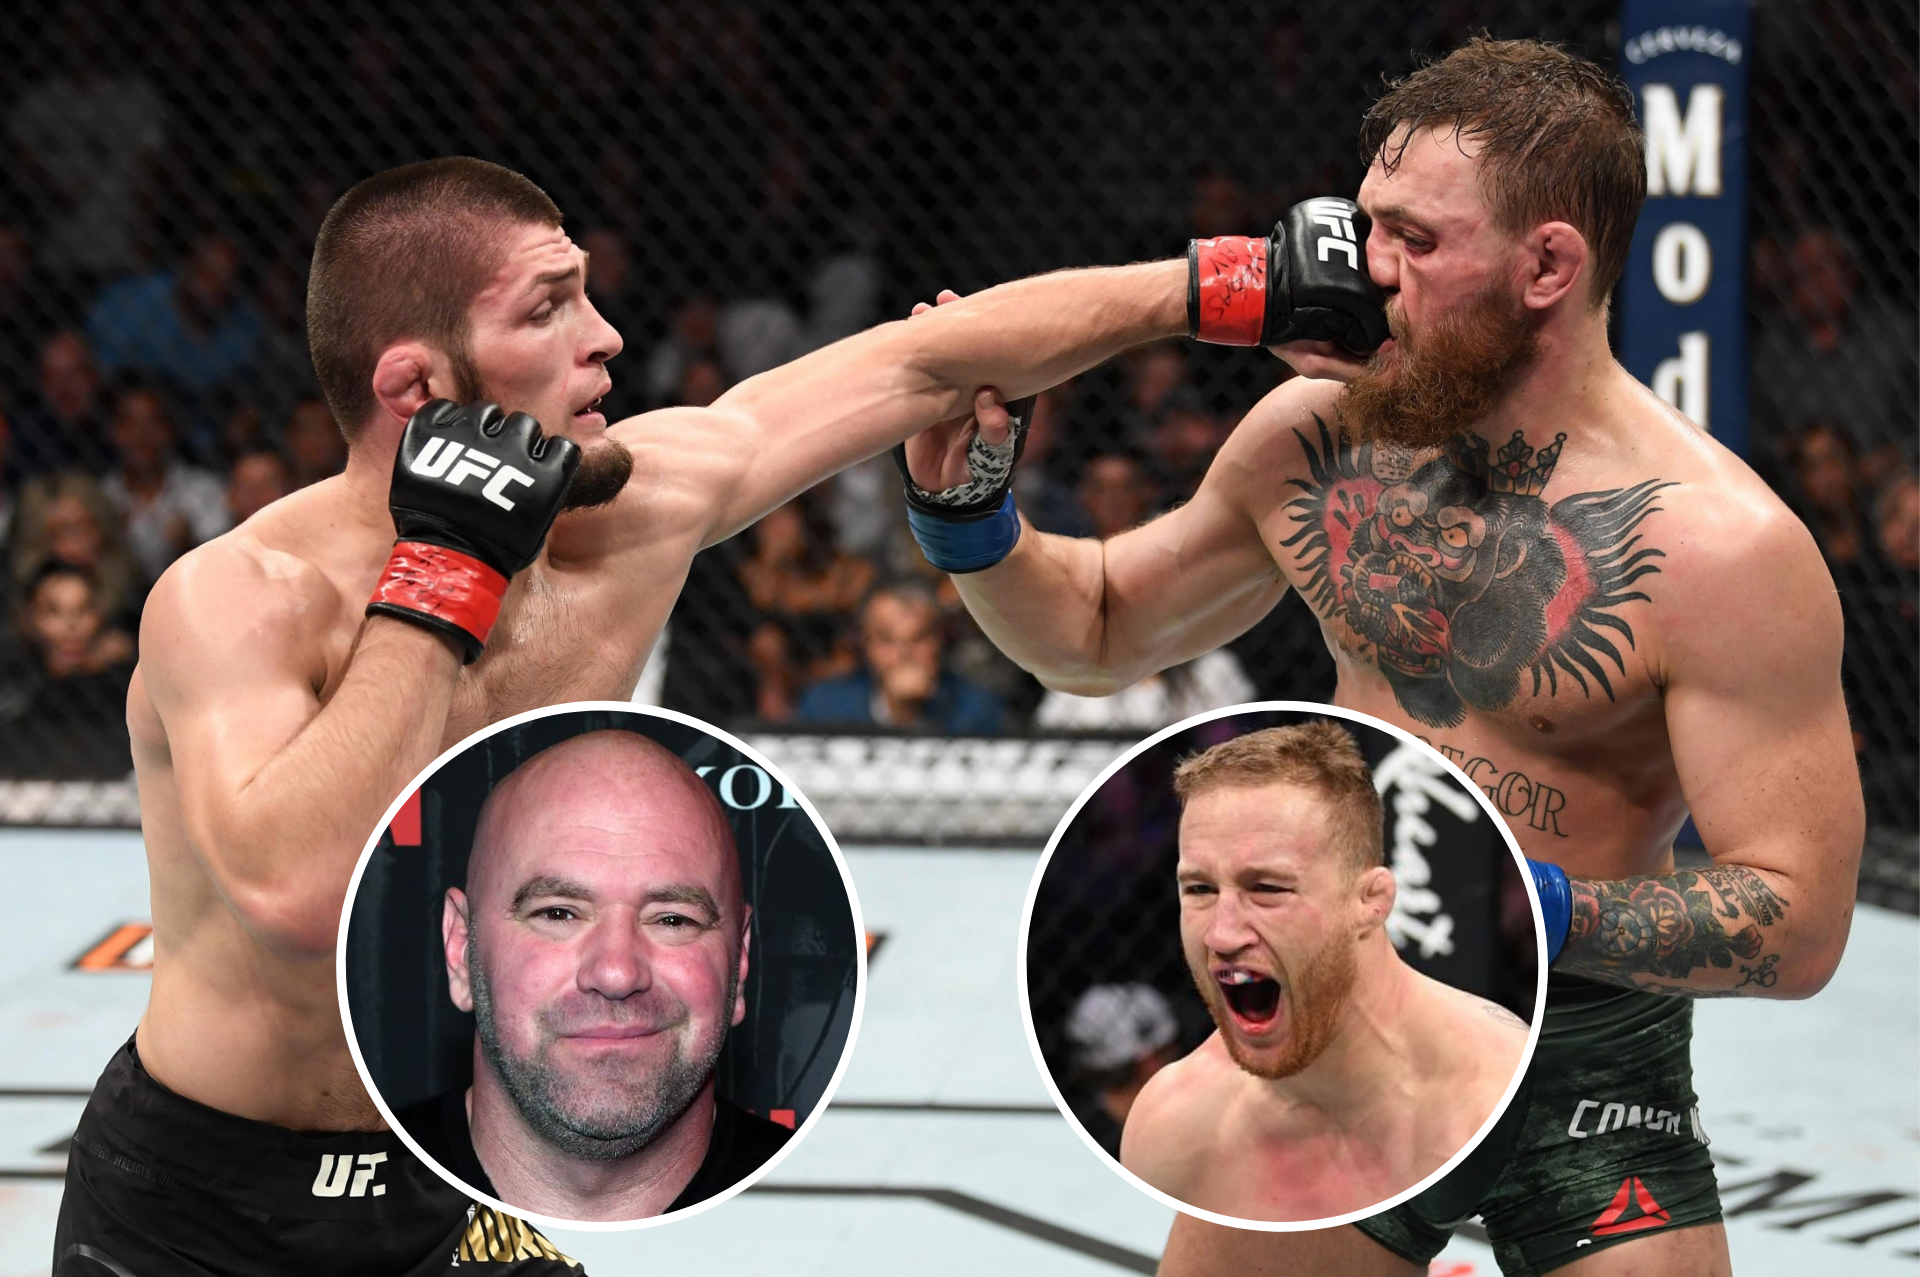 Justin Gaethje confused by Dana White's statement - but understands why Conor vs Khabib may be next - Gaethje